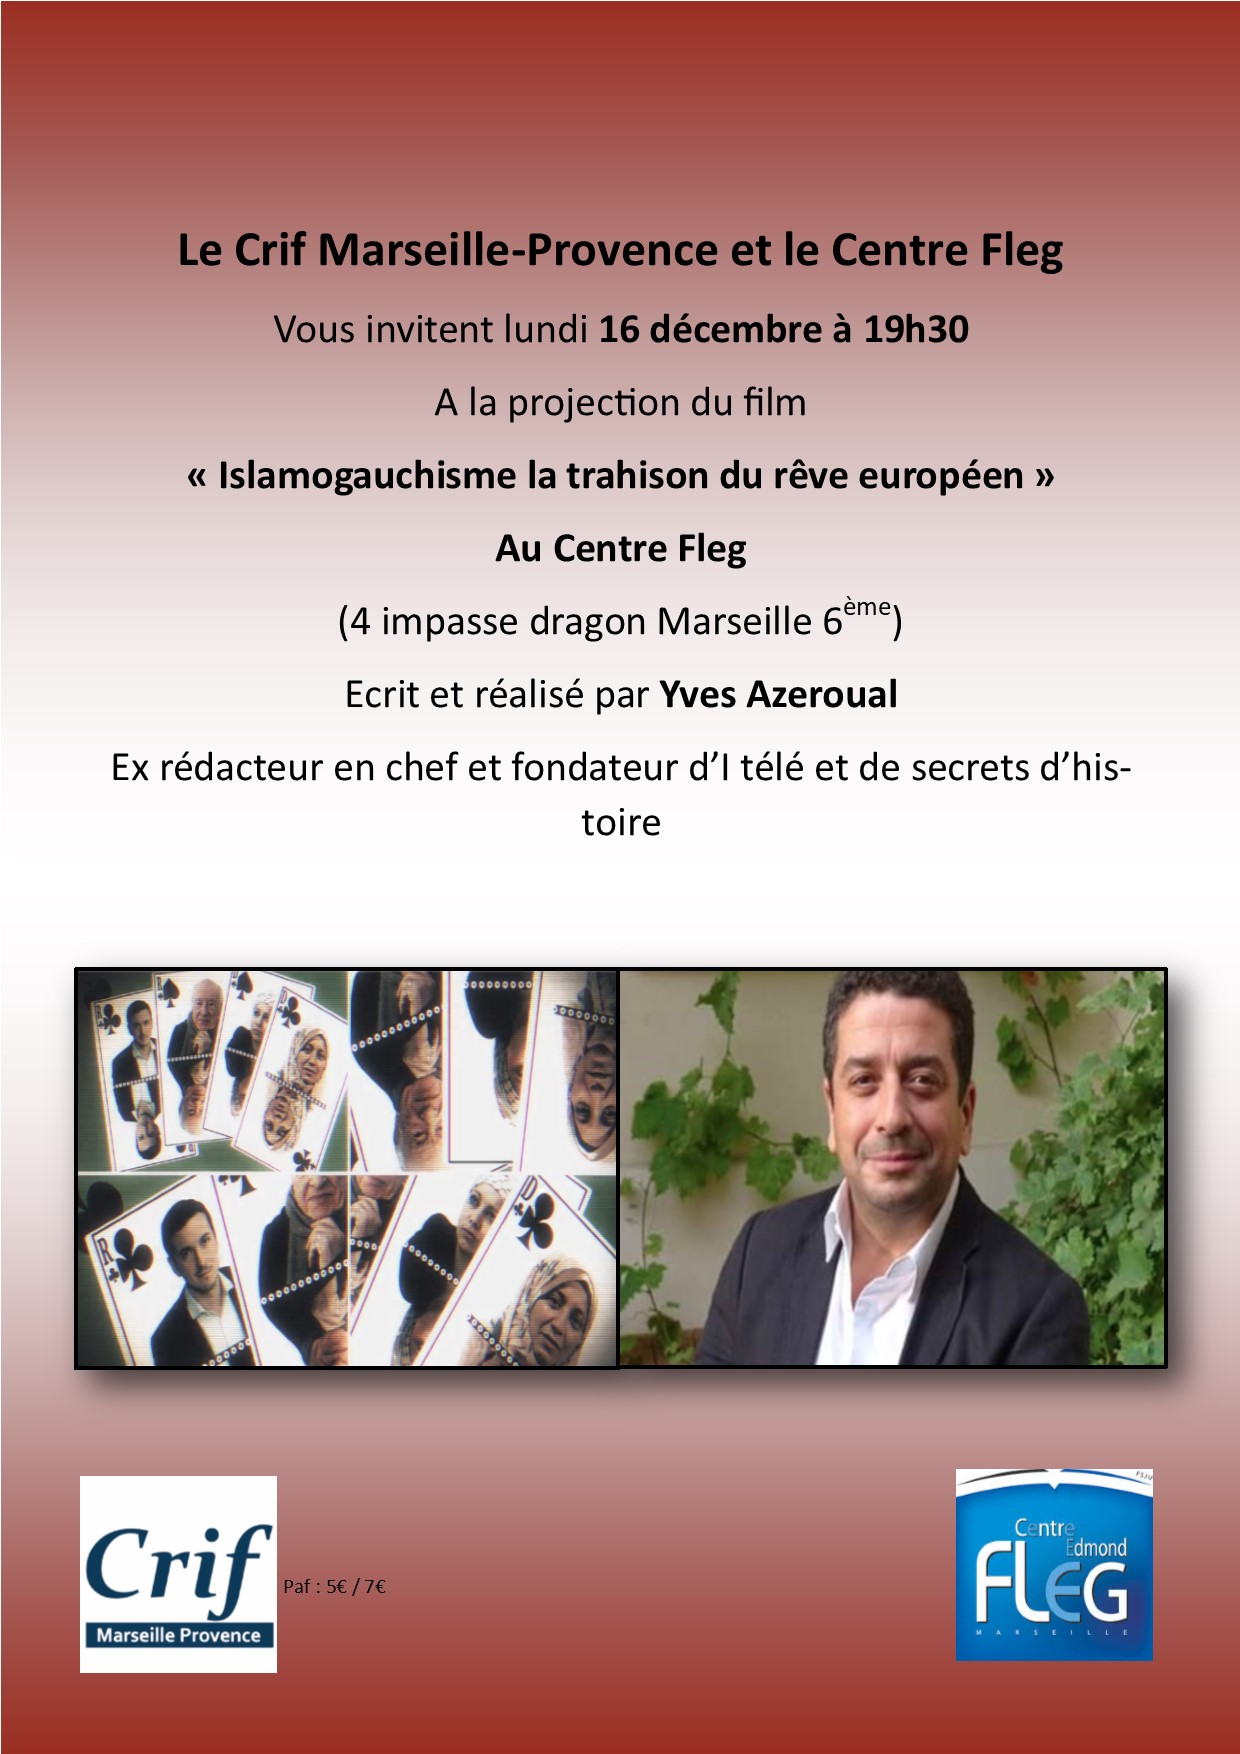 Projection du film de Yves Azeroual @ CENTRE EDMOND FLEG